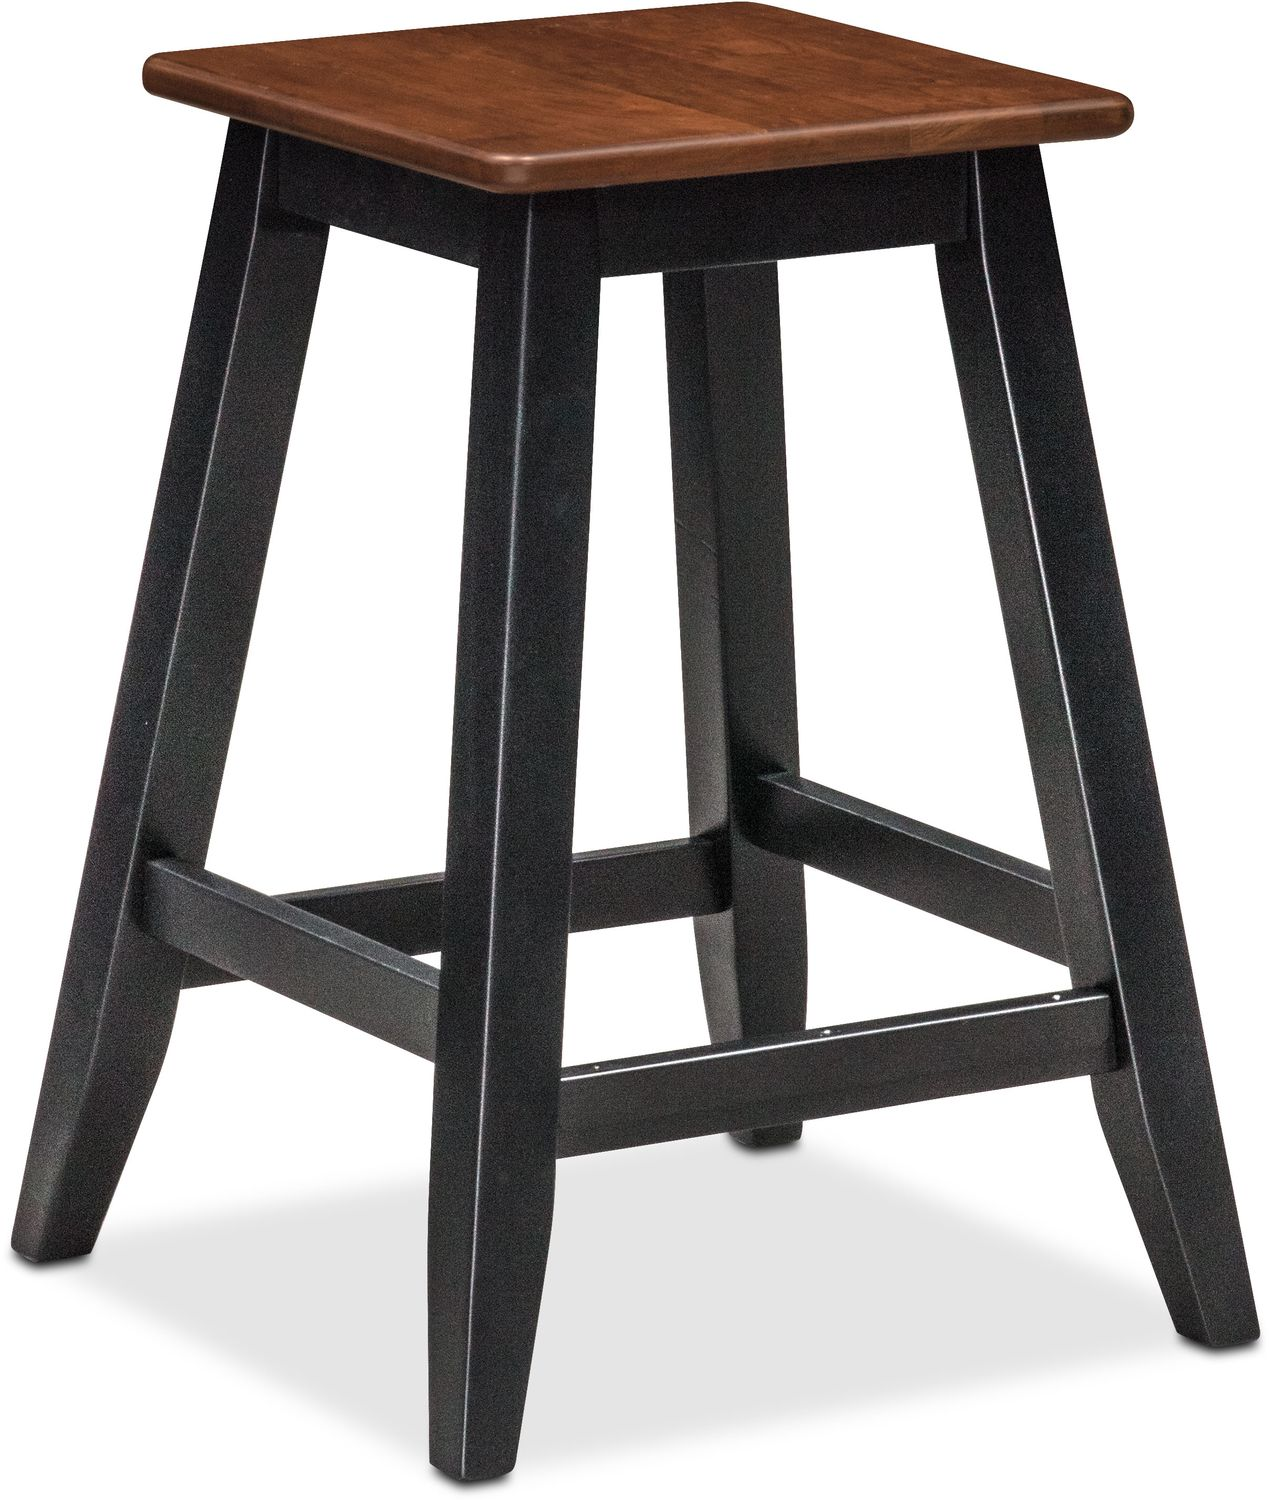 Nantucket Breakfast Bar And 2 Counter Height Stools   Black And Cherry